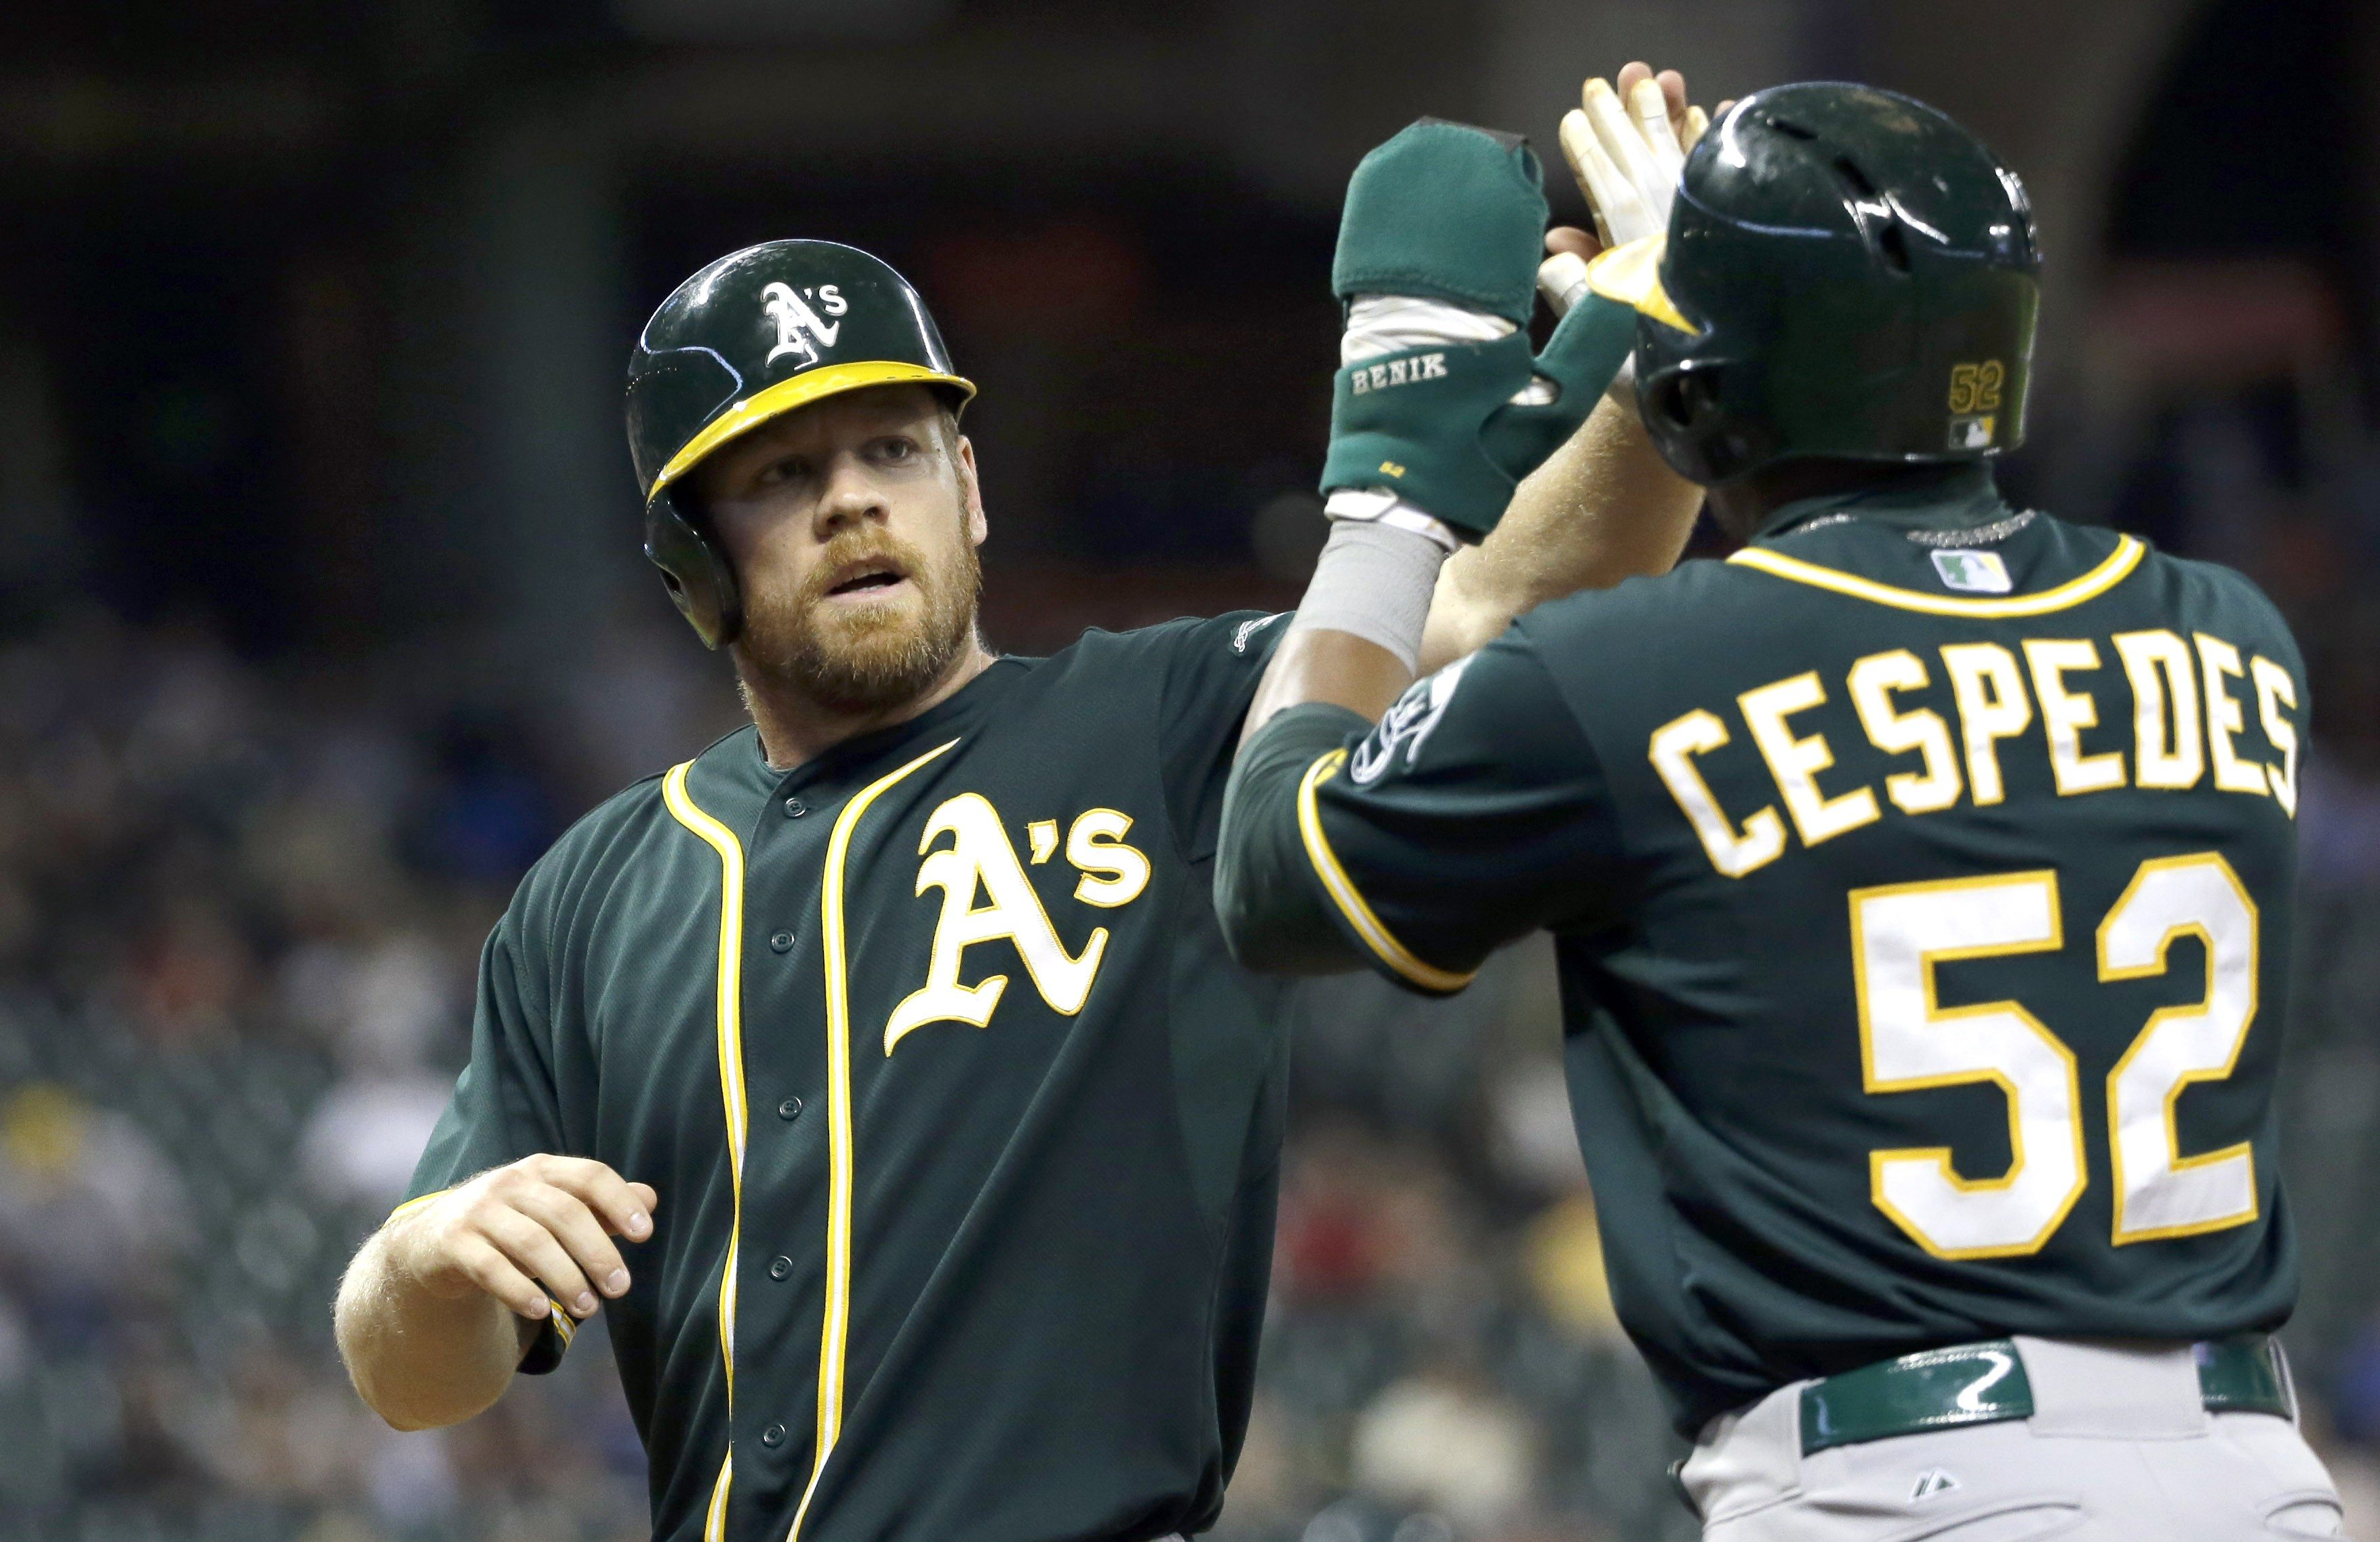 AP Photo/David J. PhillipOakland Athletics' Brandon Moss